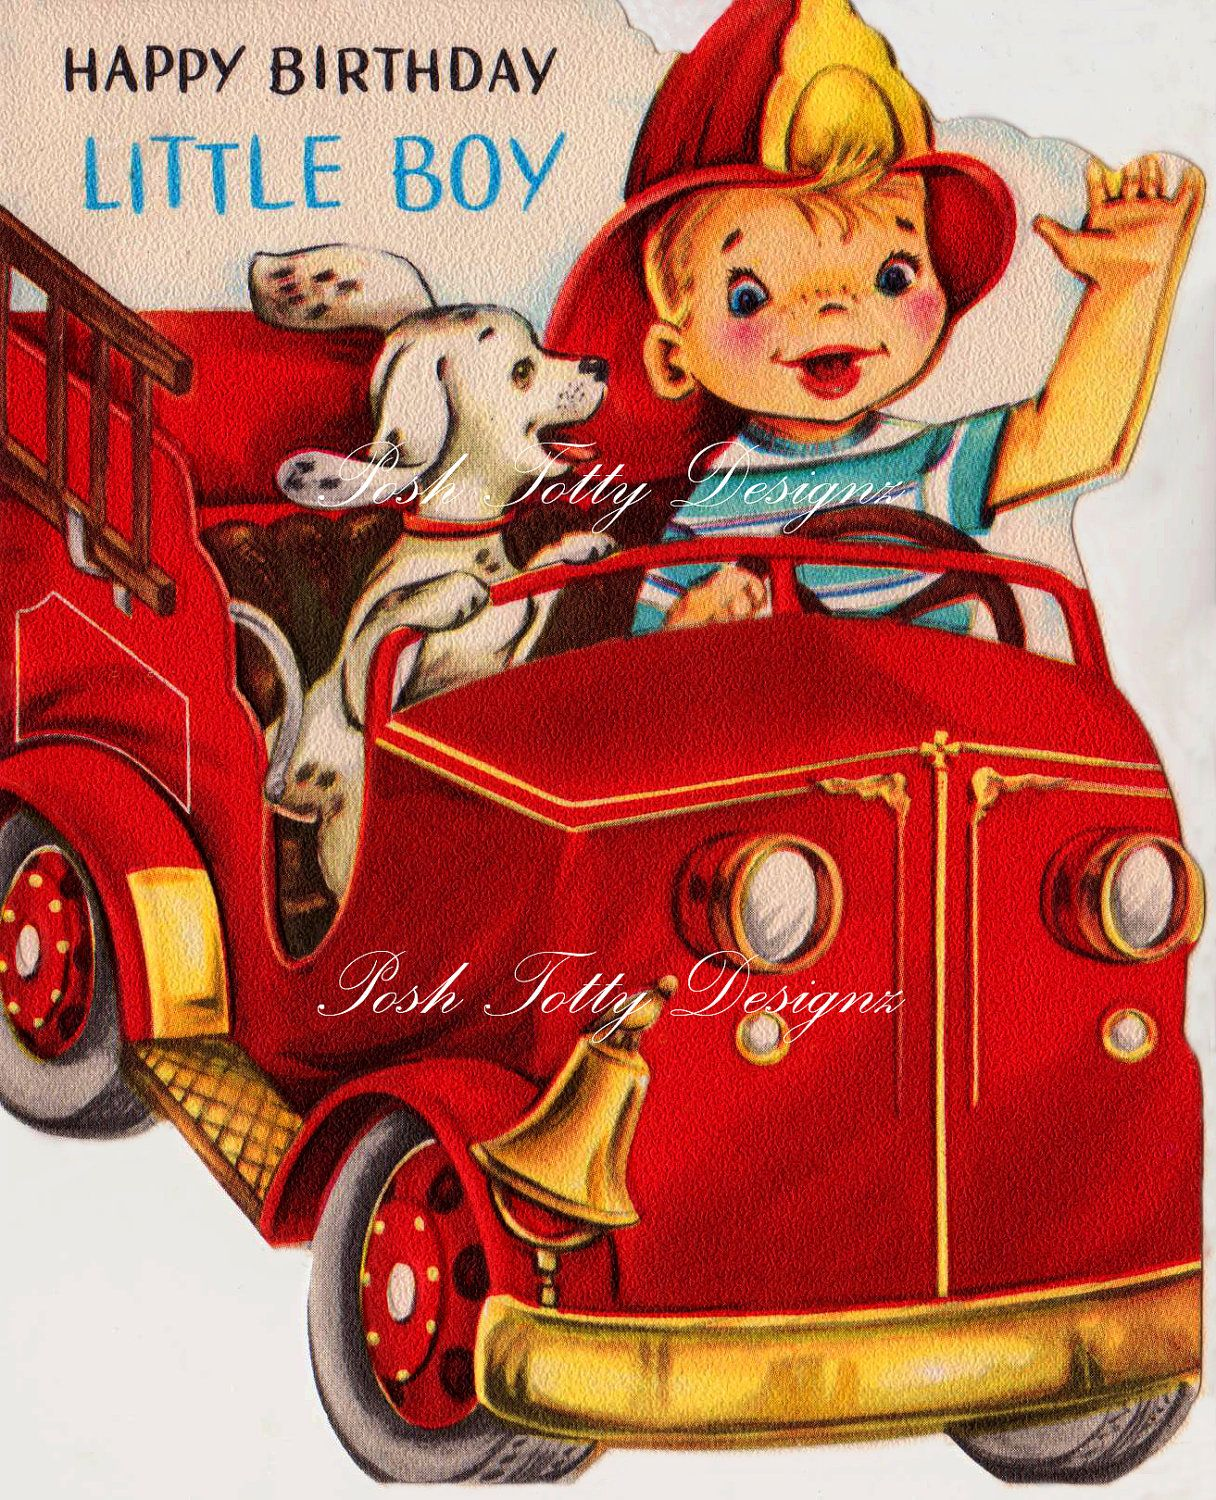 1950s Happy Birthday Little Boy Fire Chief Vintage Greetings Card Digital Download Printable Image 331